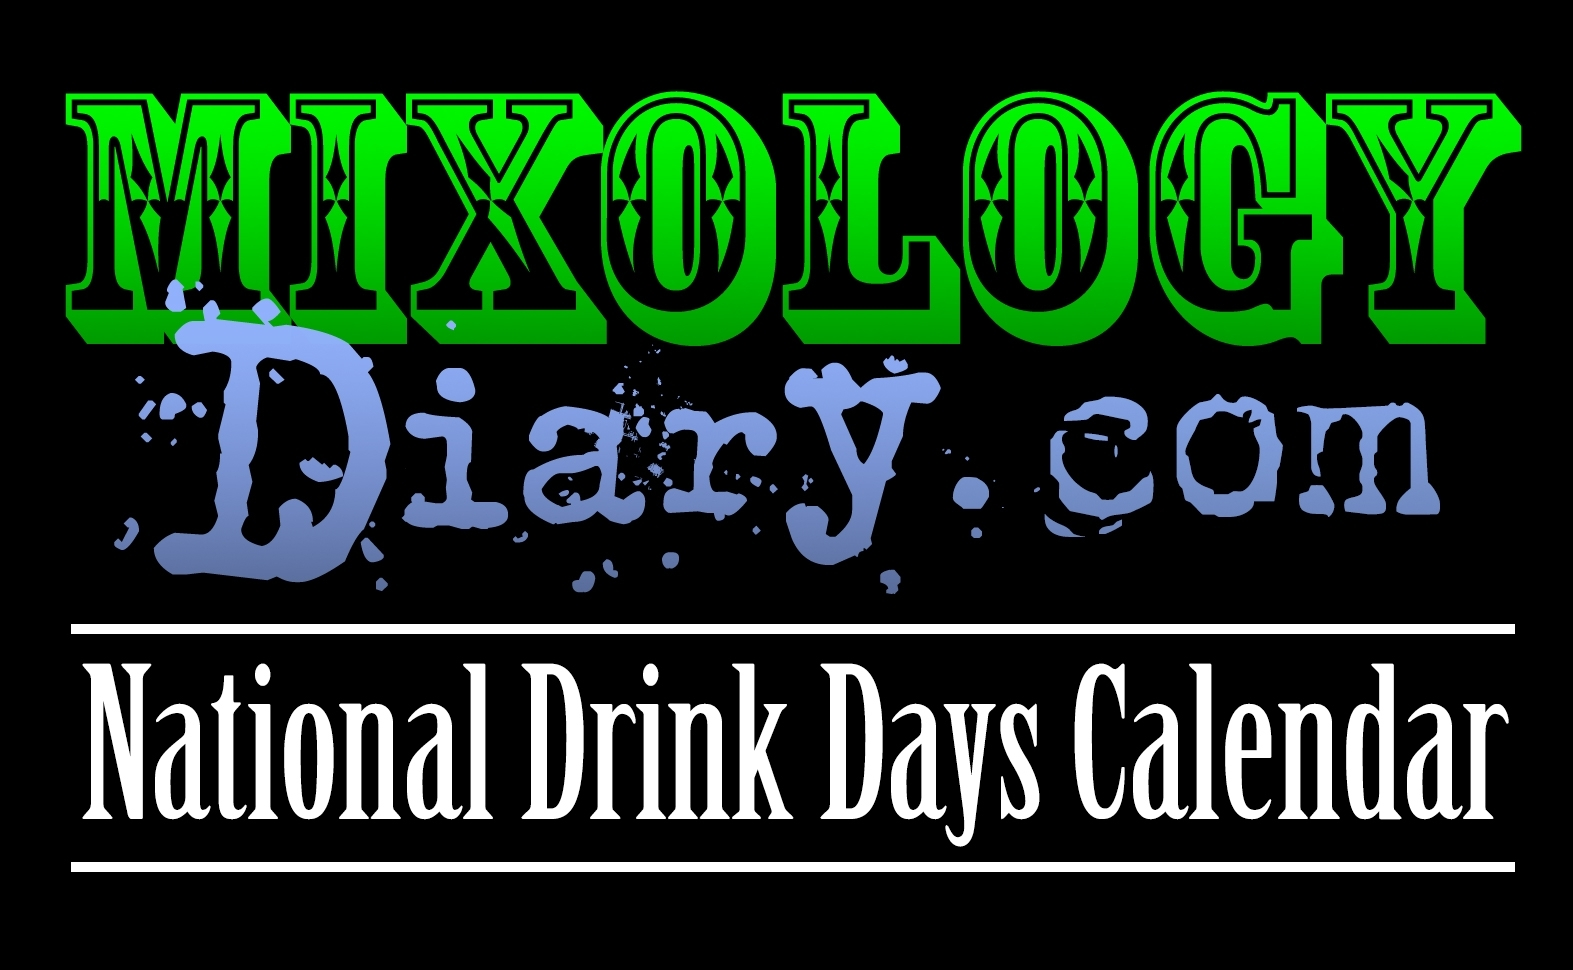 National Drink Days Calendar - Mixology Diary intended for Calendar Of National Theme Days